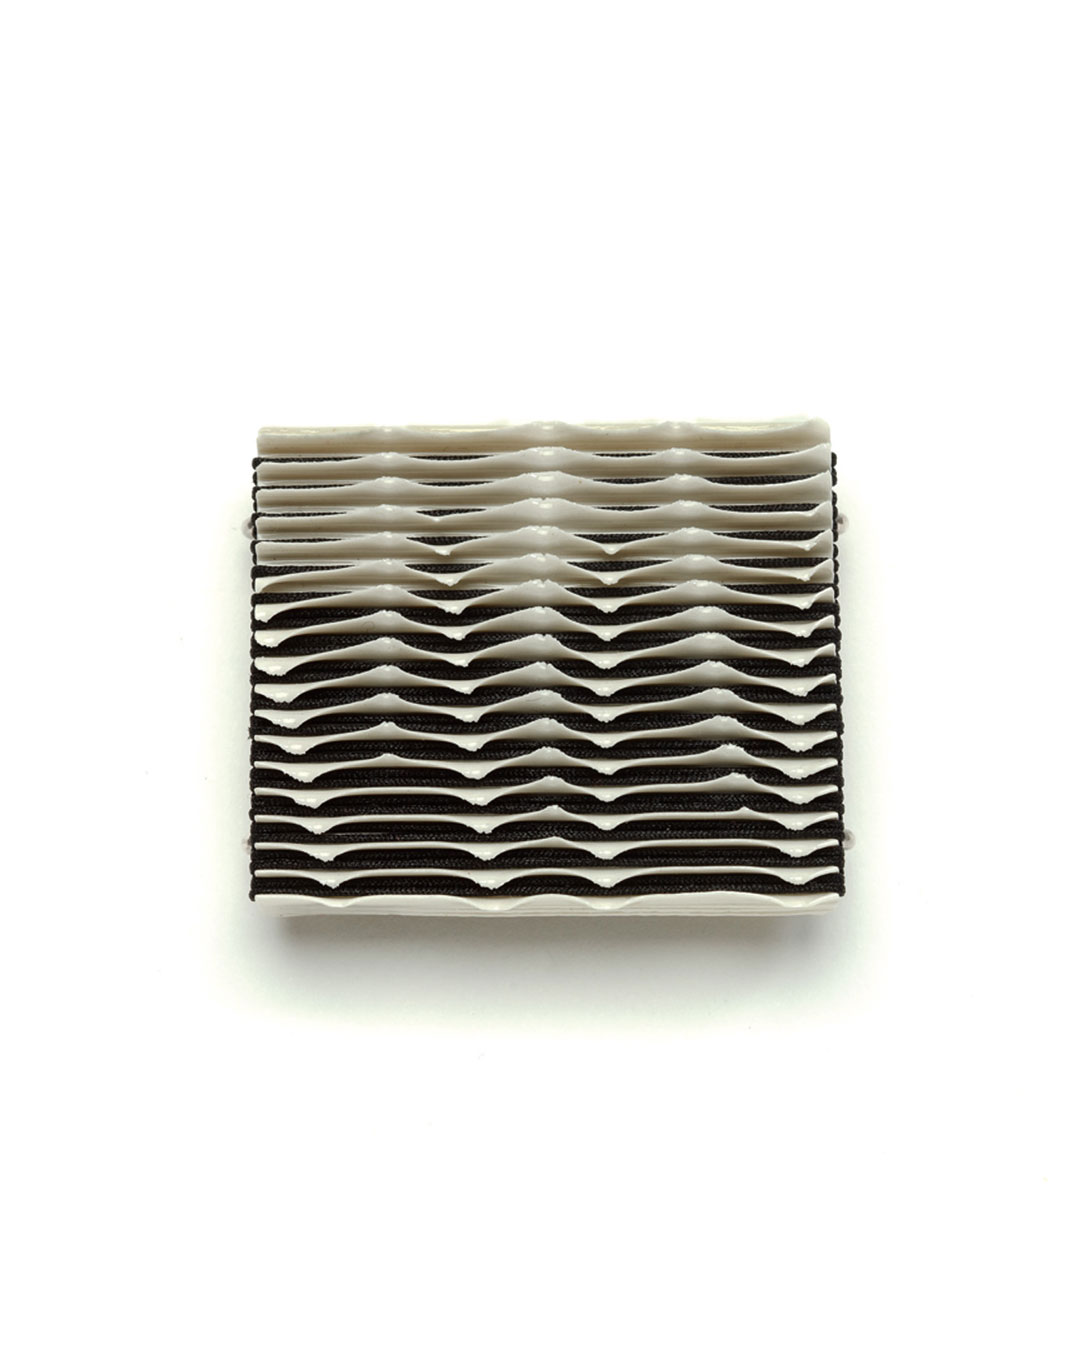 Silke Trekel, Twilight, 2017, brooch; porcelain, silver, thread, 54 x 45 x 9 mm, €775